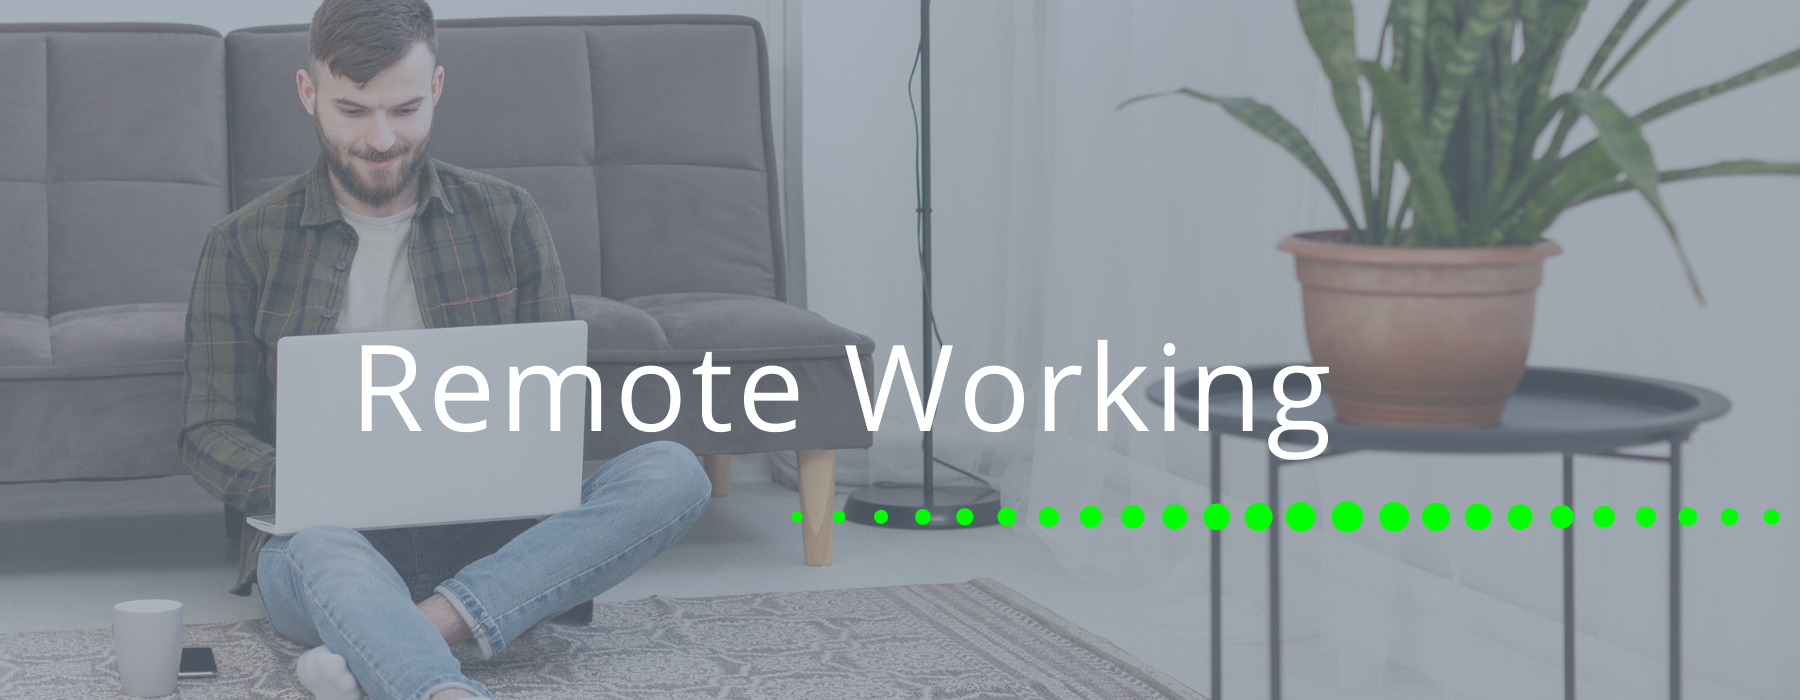 Remote / Flexible Working